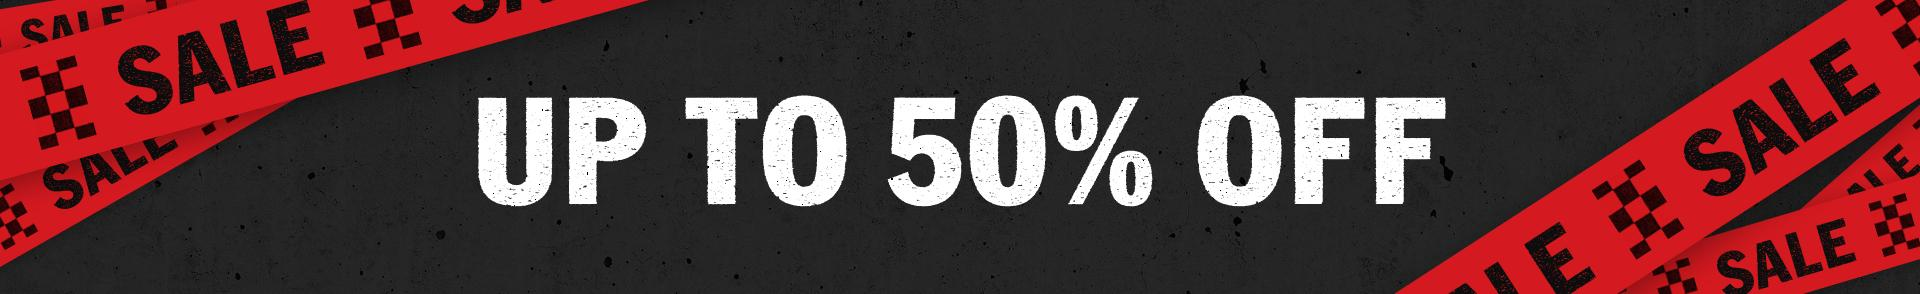 Sale On Now | Up to 50% Off On Now